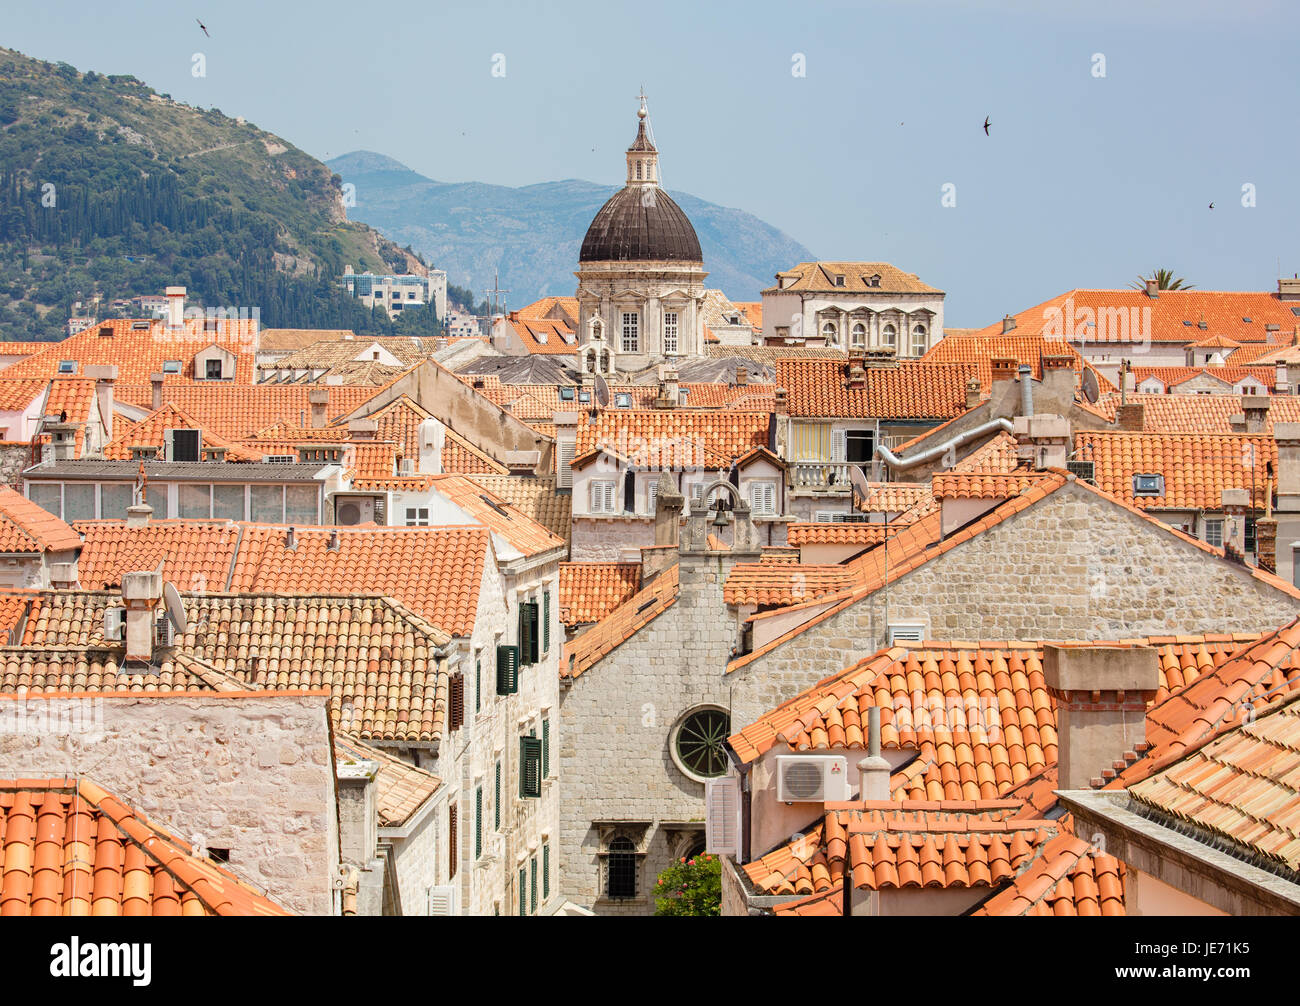 View from the massive defensive walls enclosing the beautiful red roofed medieval city of Dubrovnik on the Dalmation Stock Photo